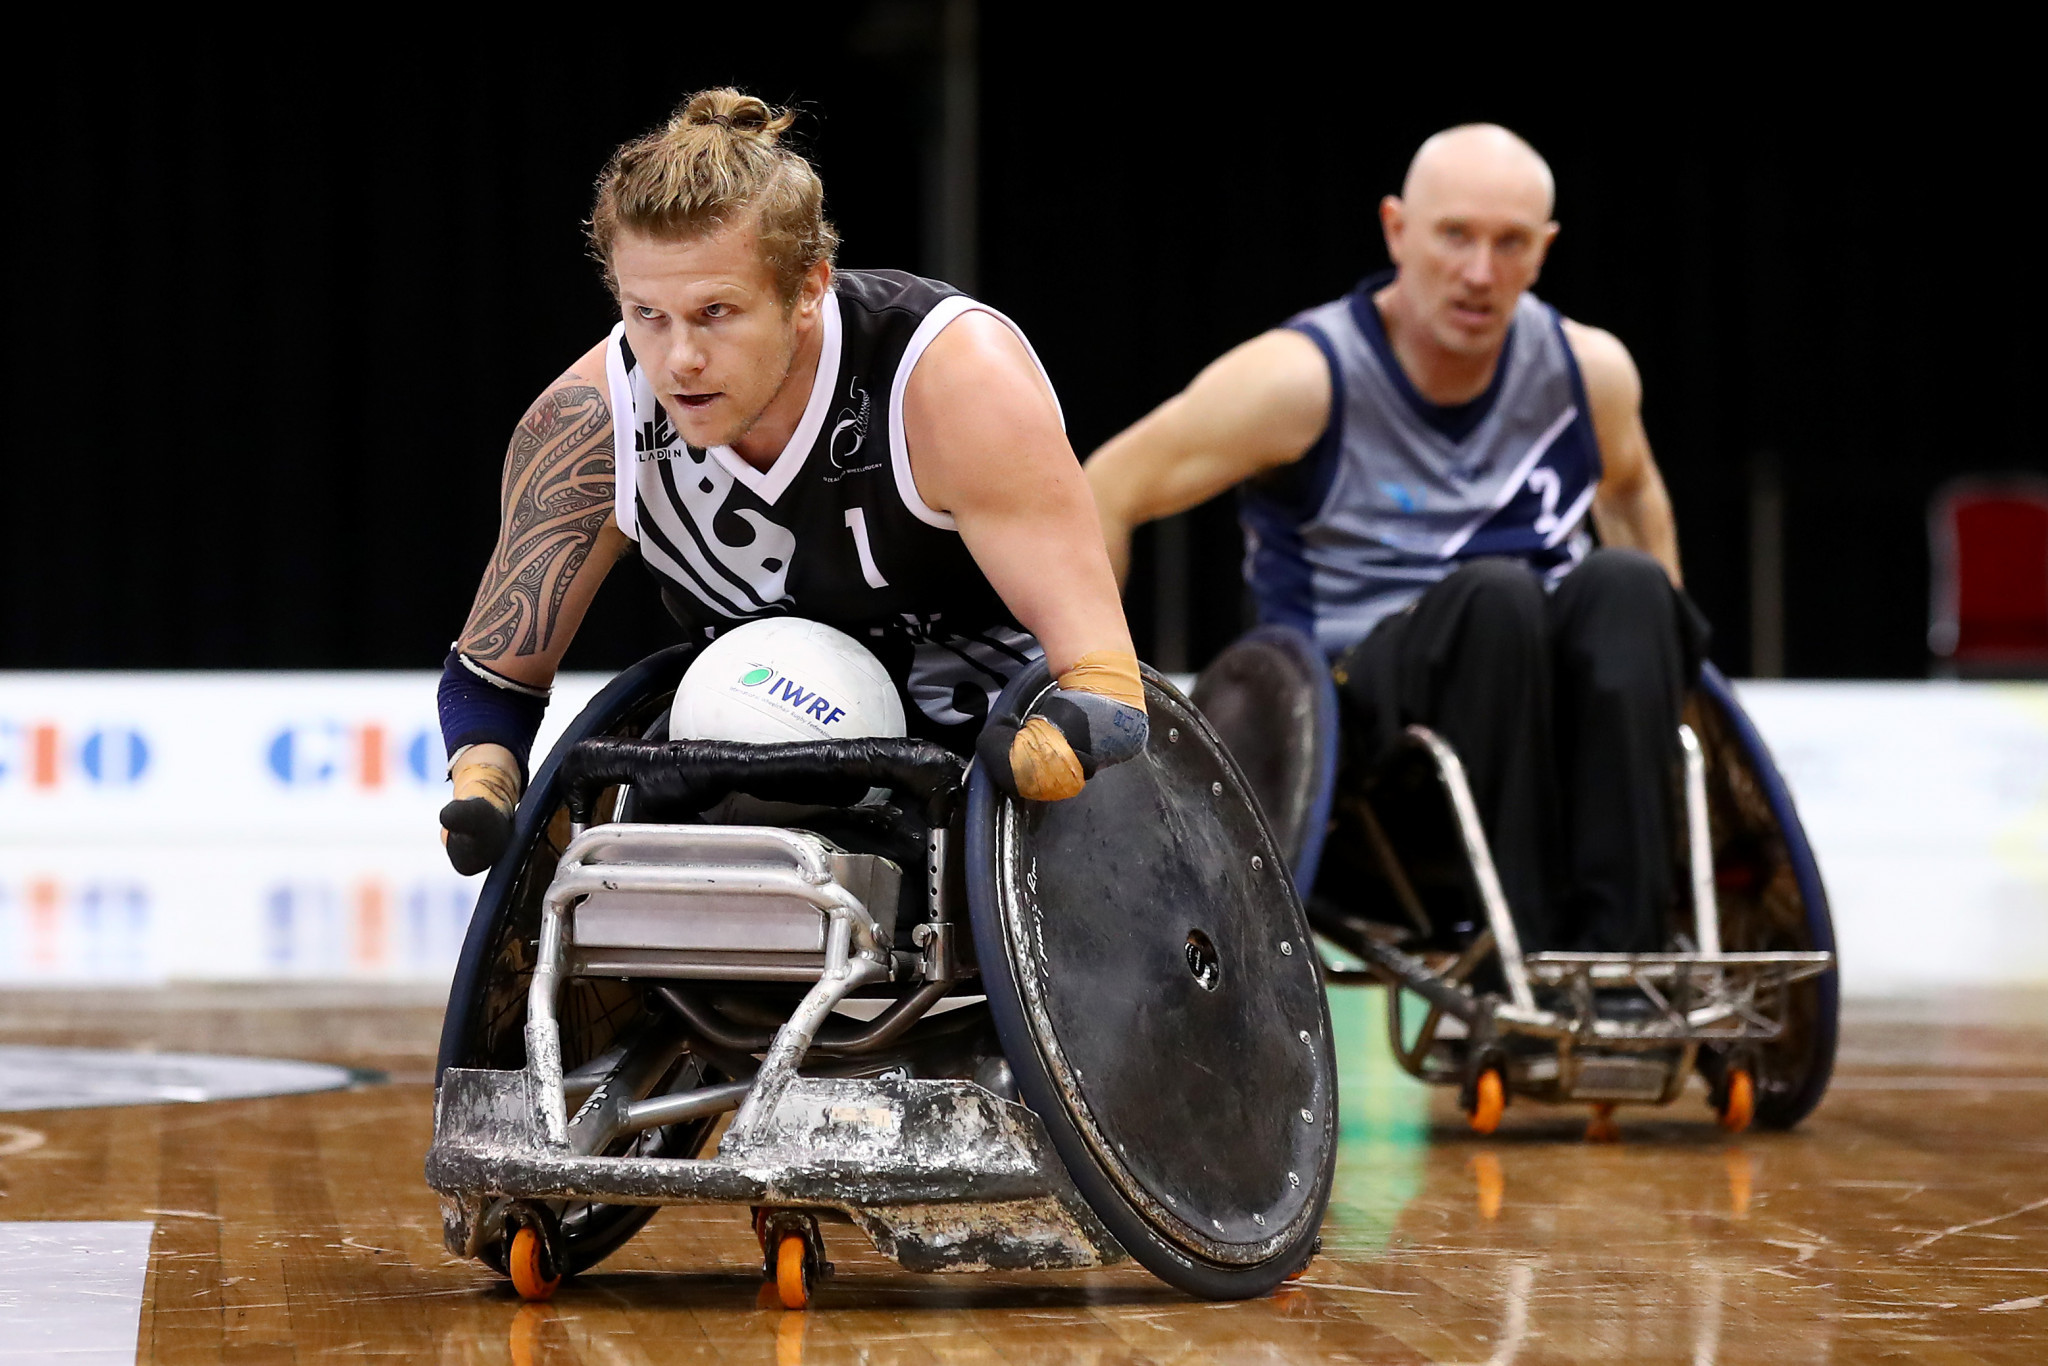 New Zealander Leslie to compete in two sports at Tokyo 2020 Paralympics